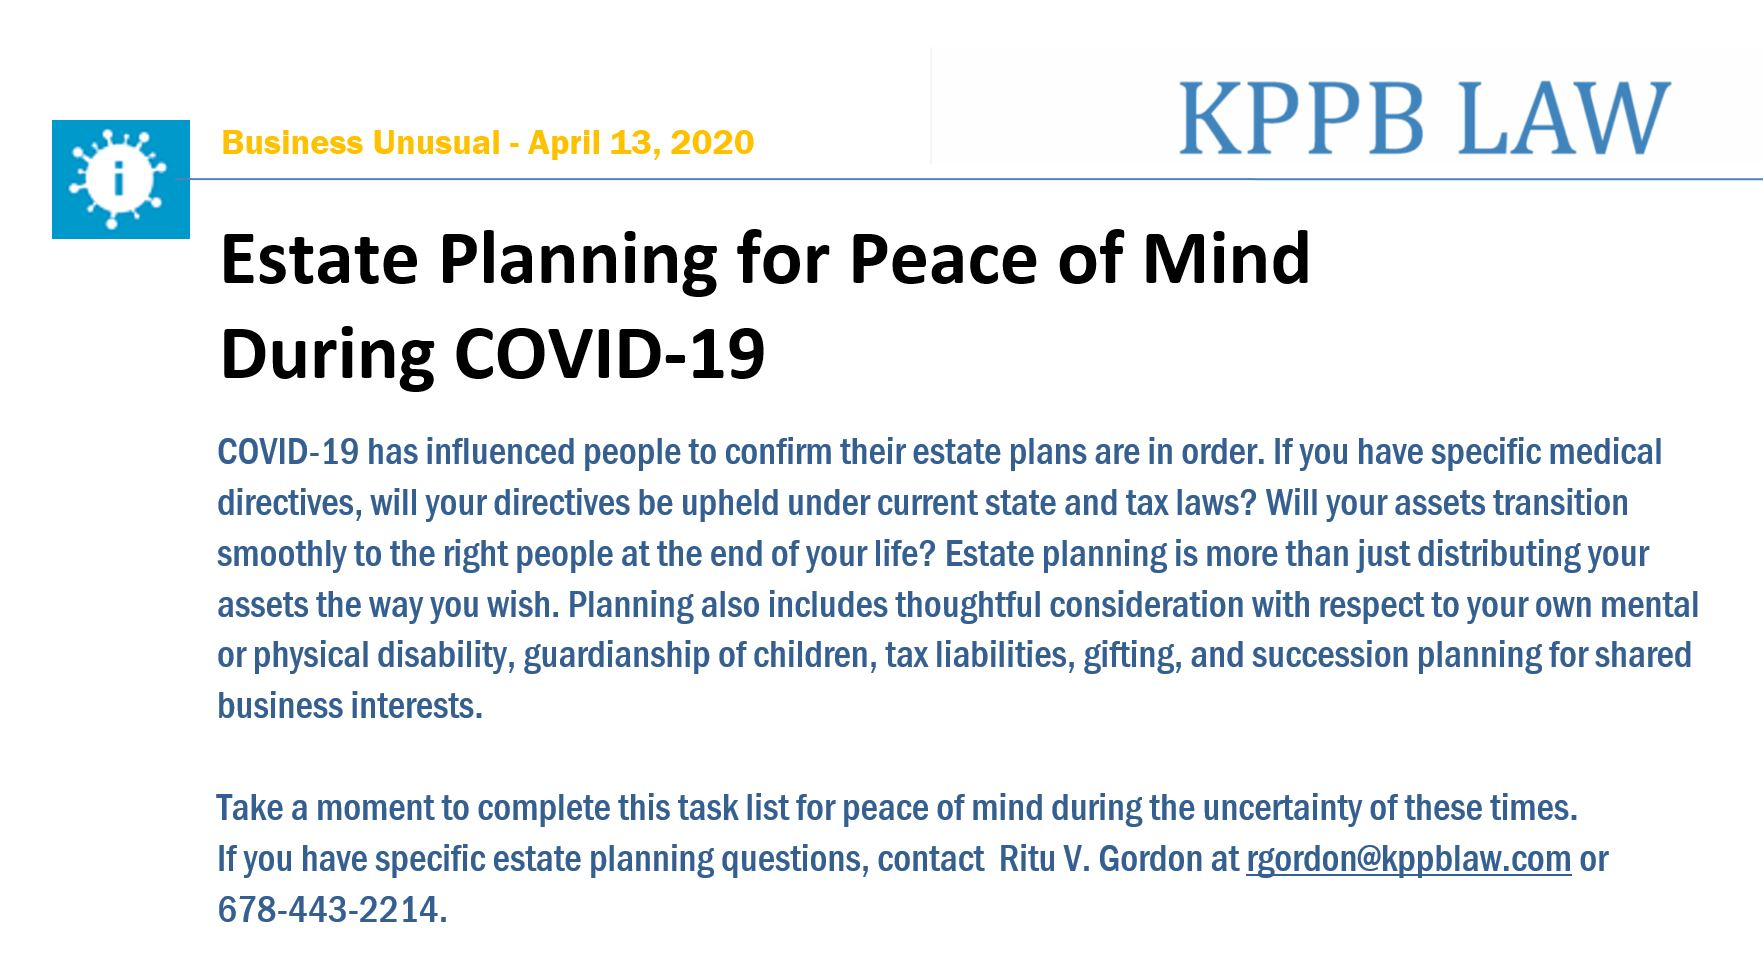 Estate Planning for Peace of Mind During COVID-19